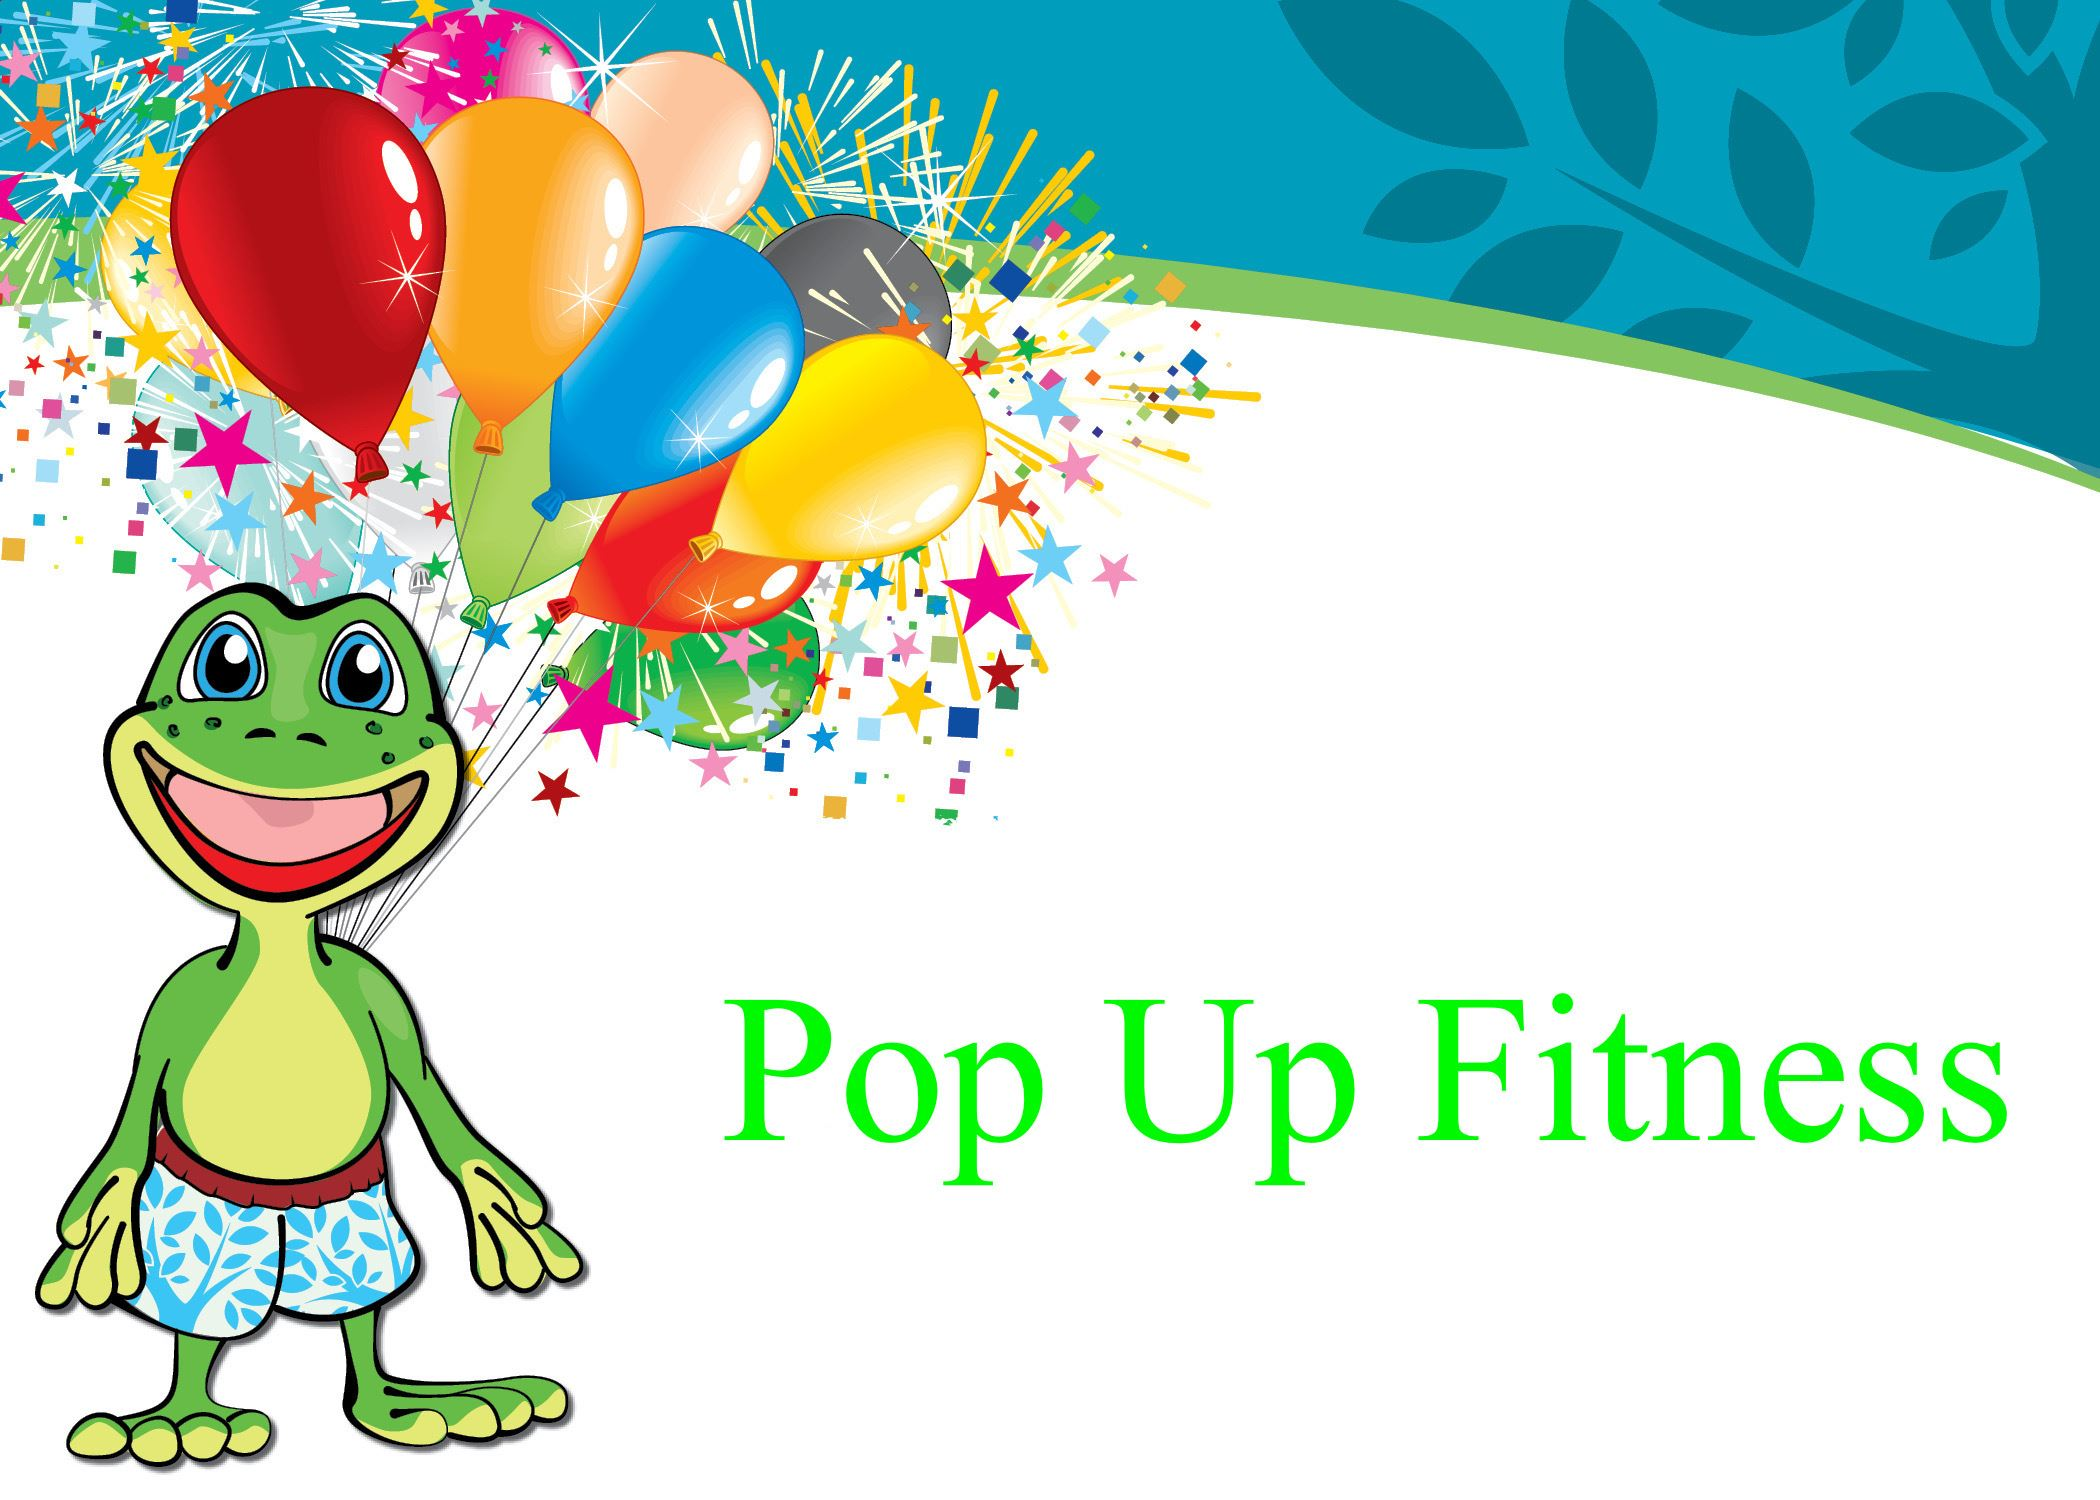 Pop Up Fitness